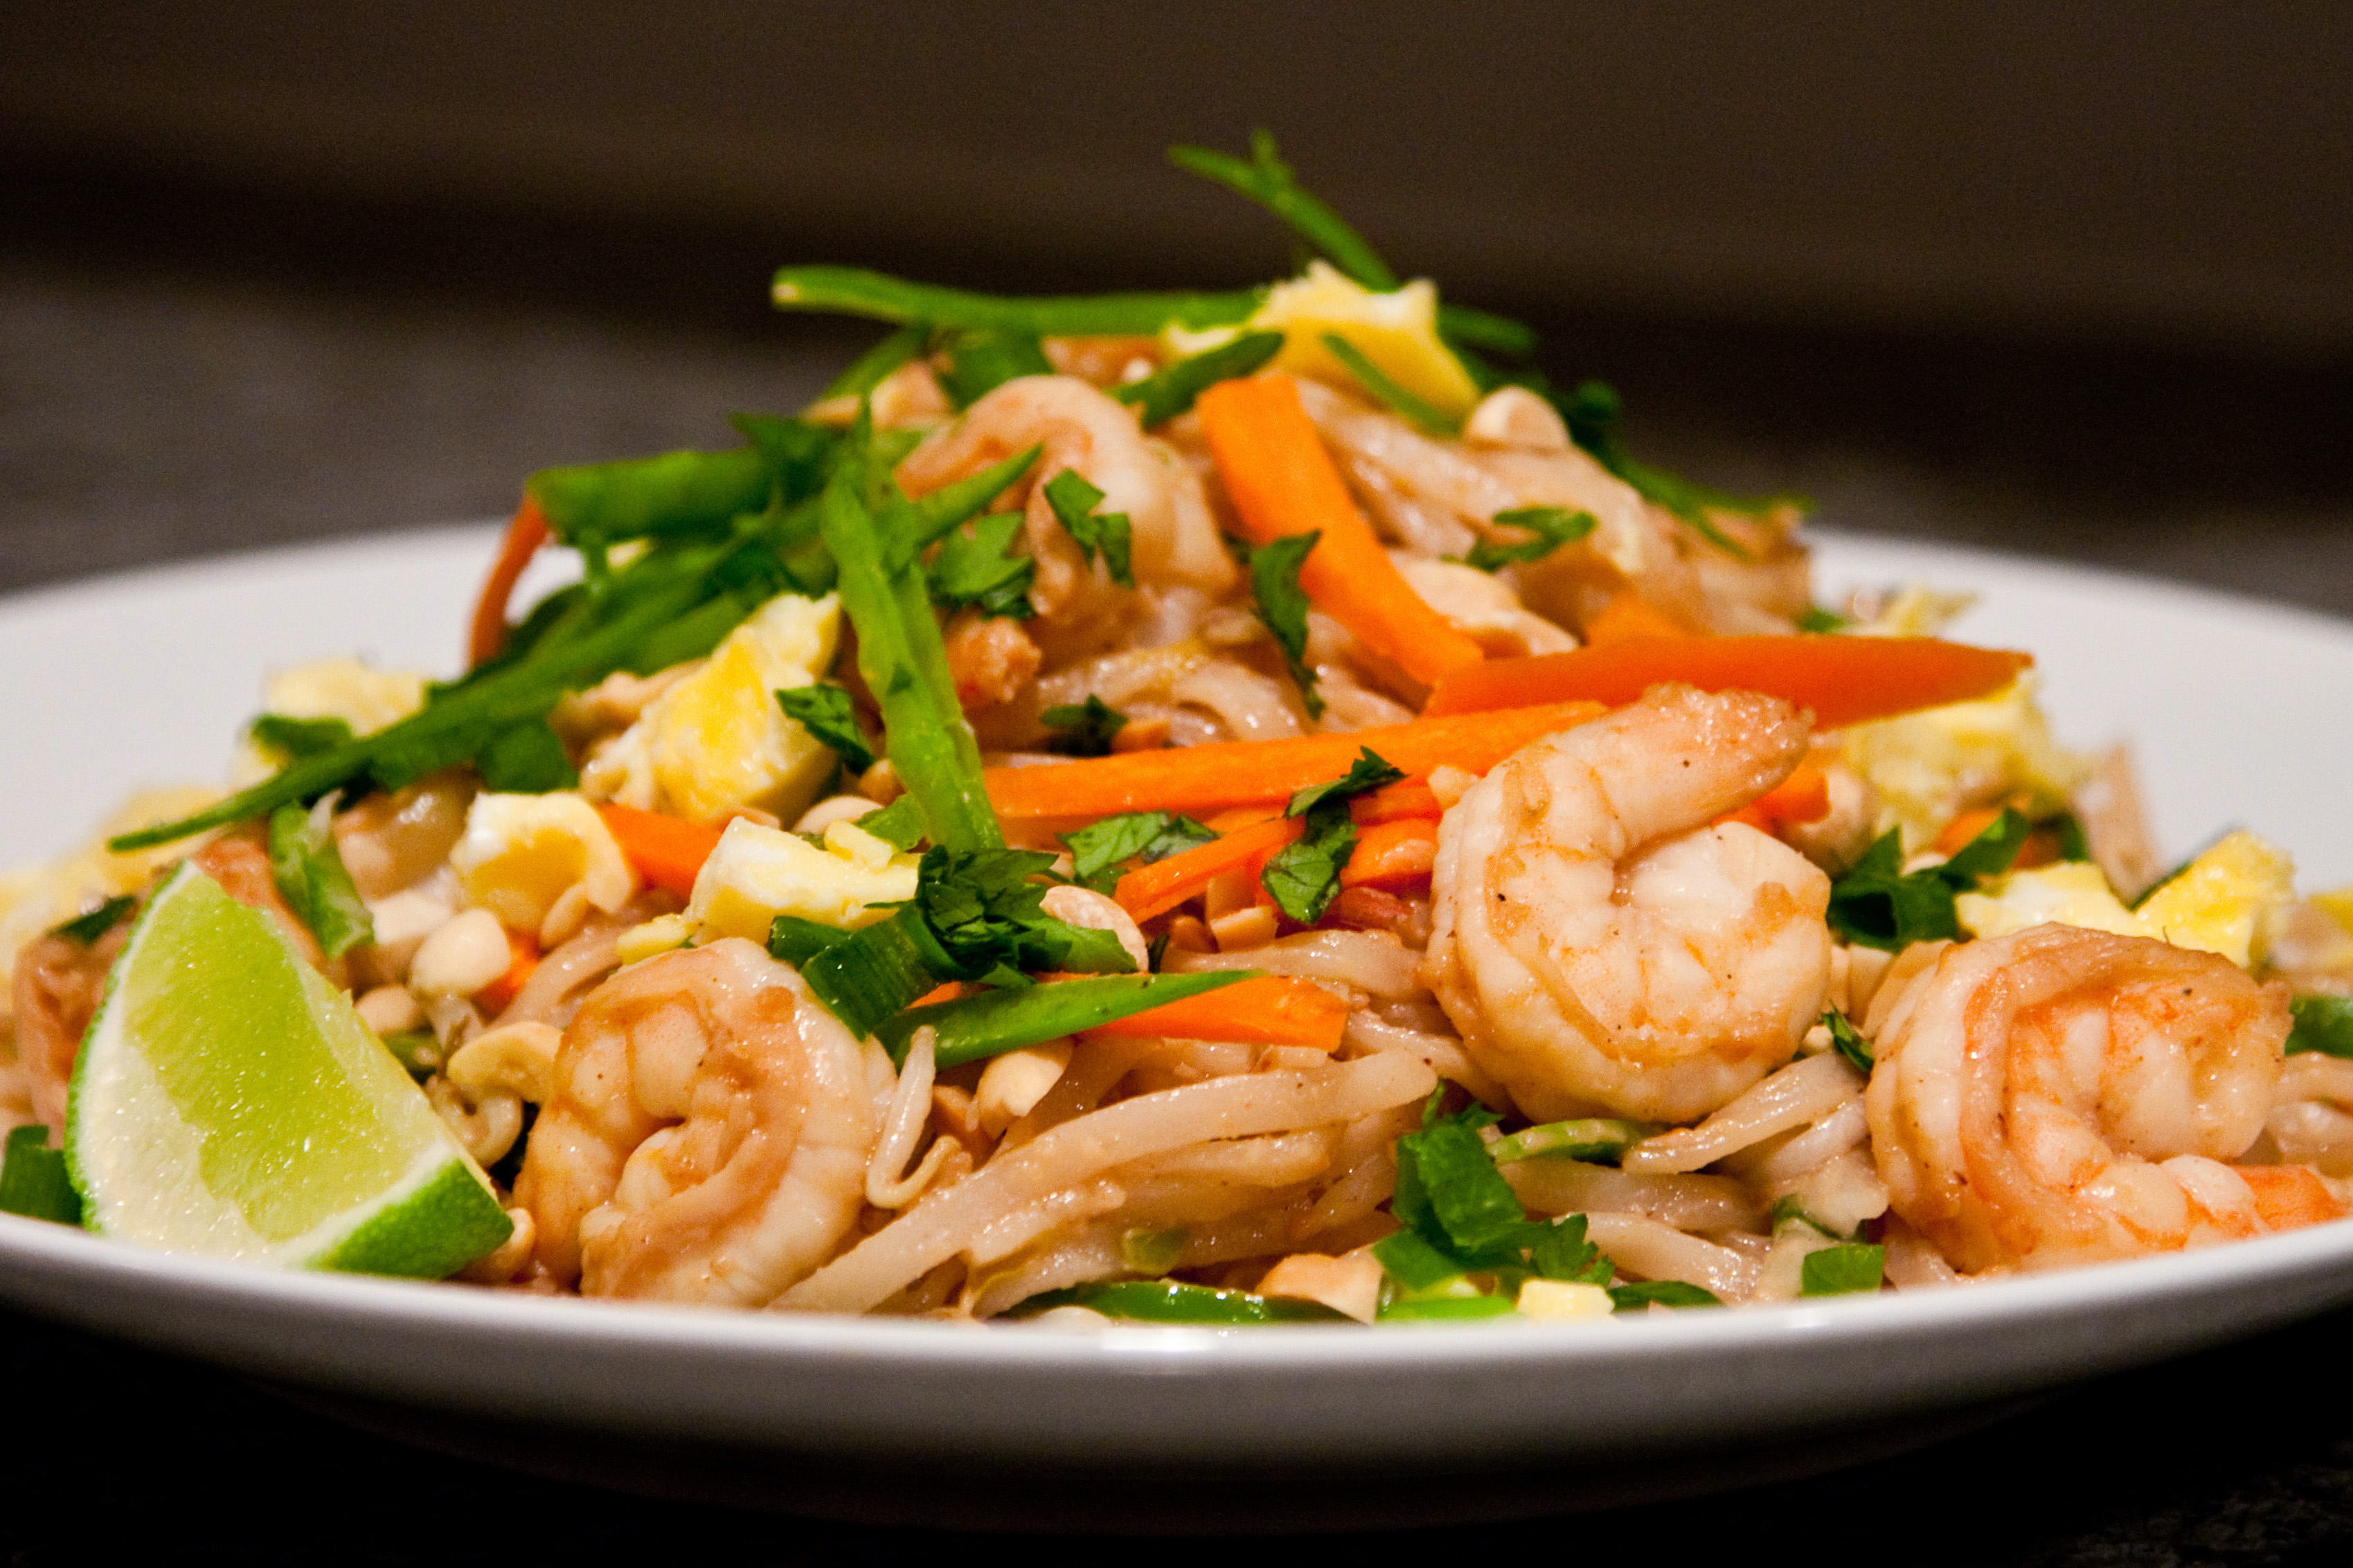 Pad thai cucina di carrie for About italian food